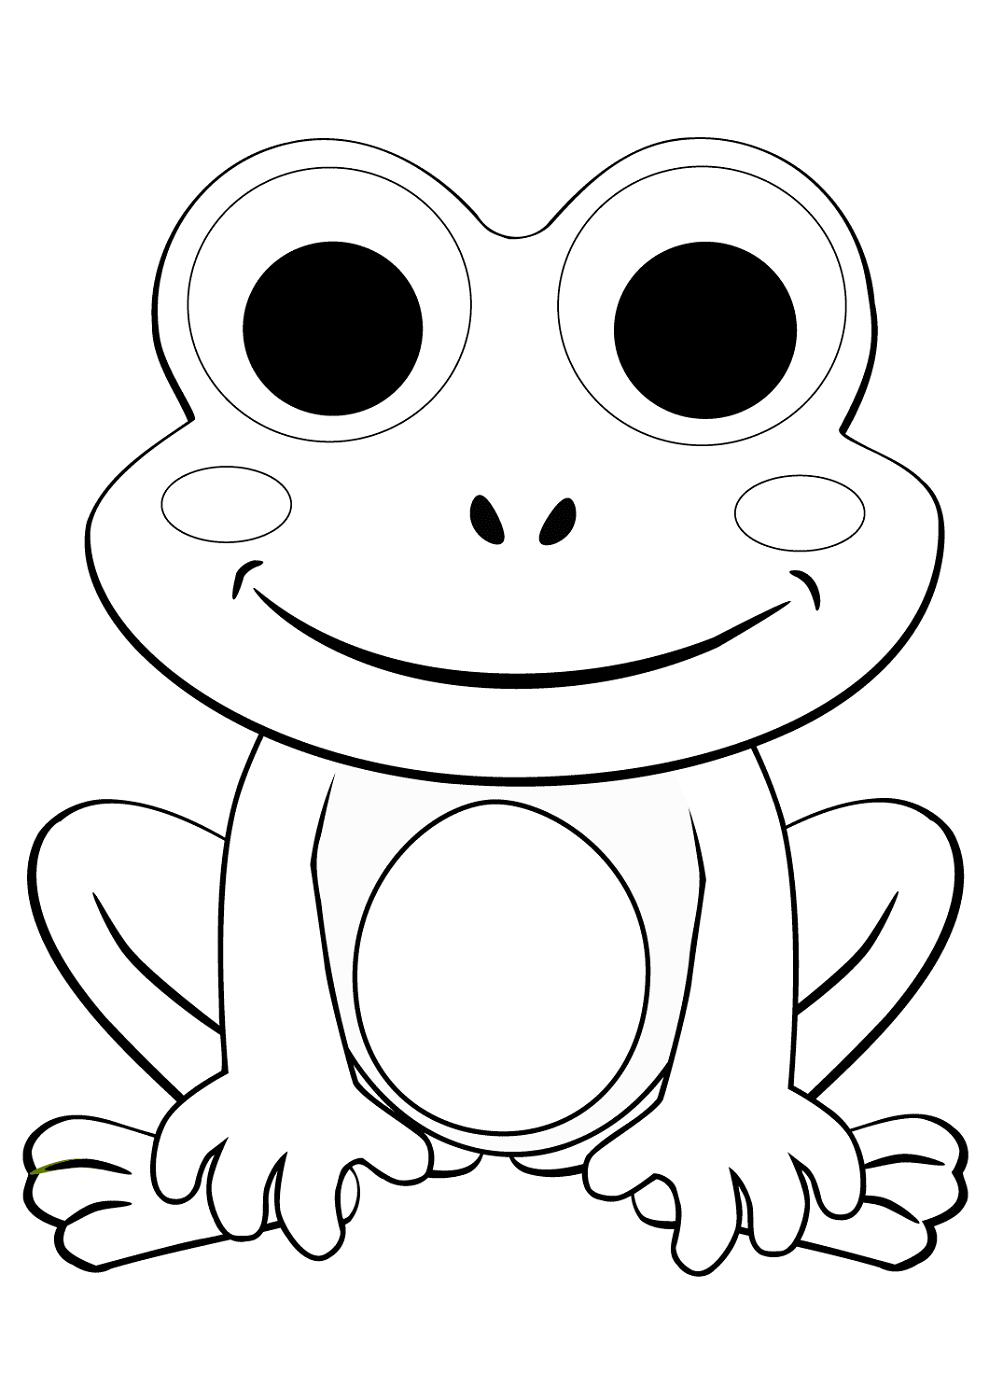 frogs coloring pages 20 free printable frog coloring pages everfreecoloringcom pages frogs coloring